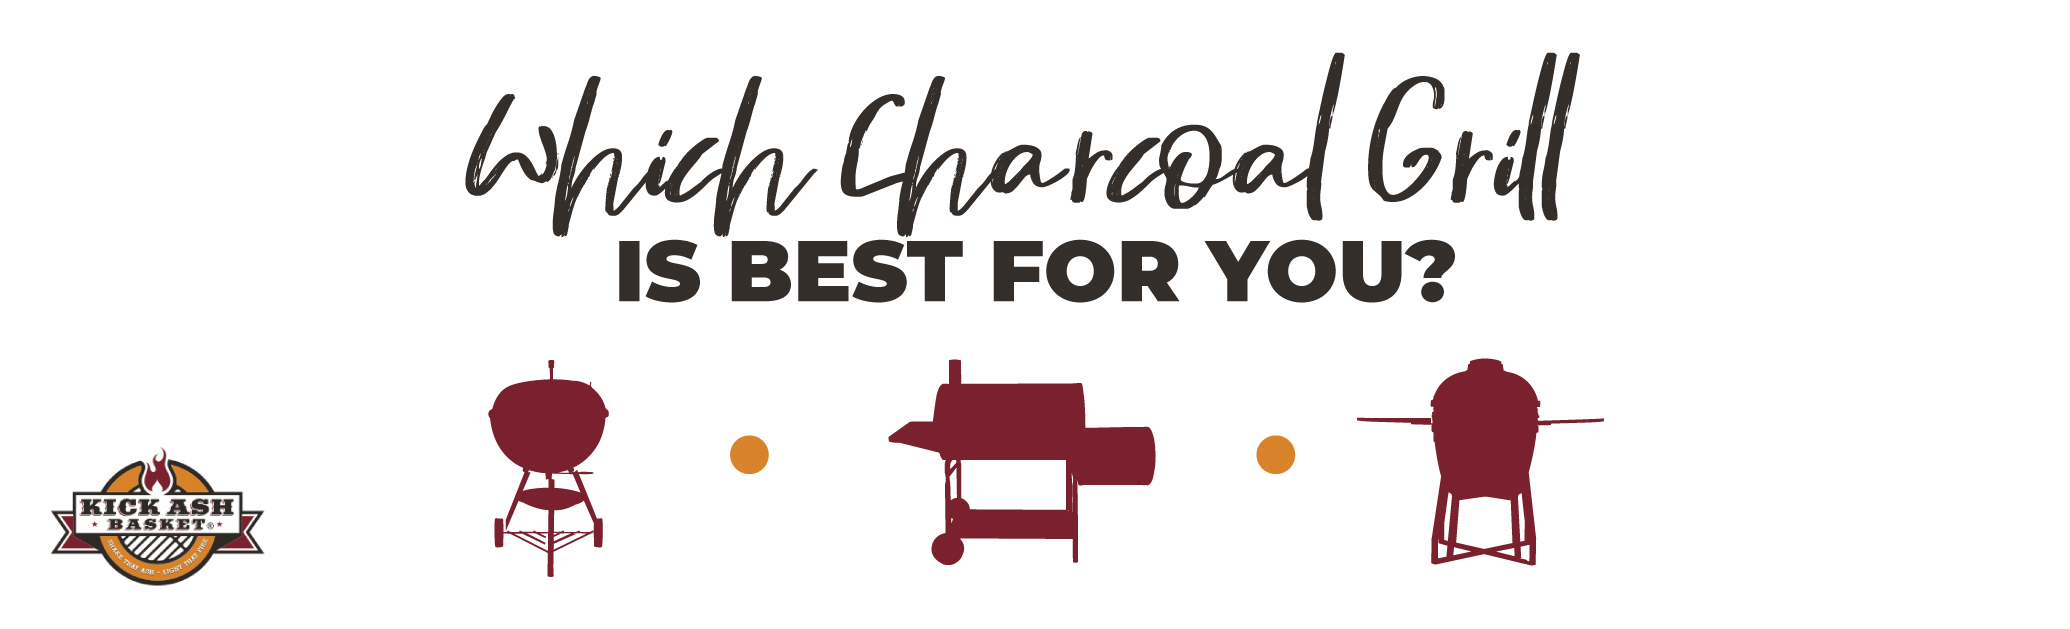 Which Charcoal Grill is Best for You?